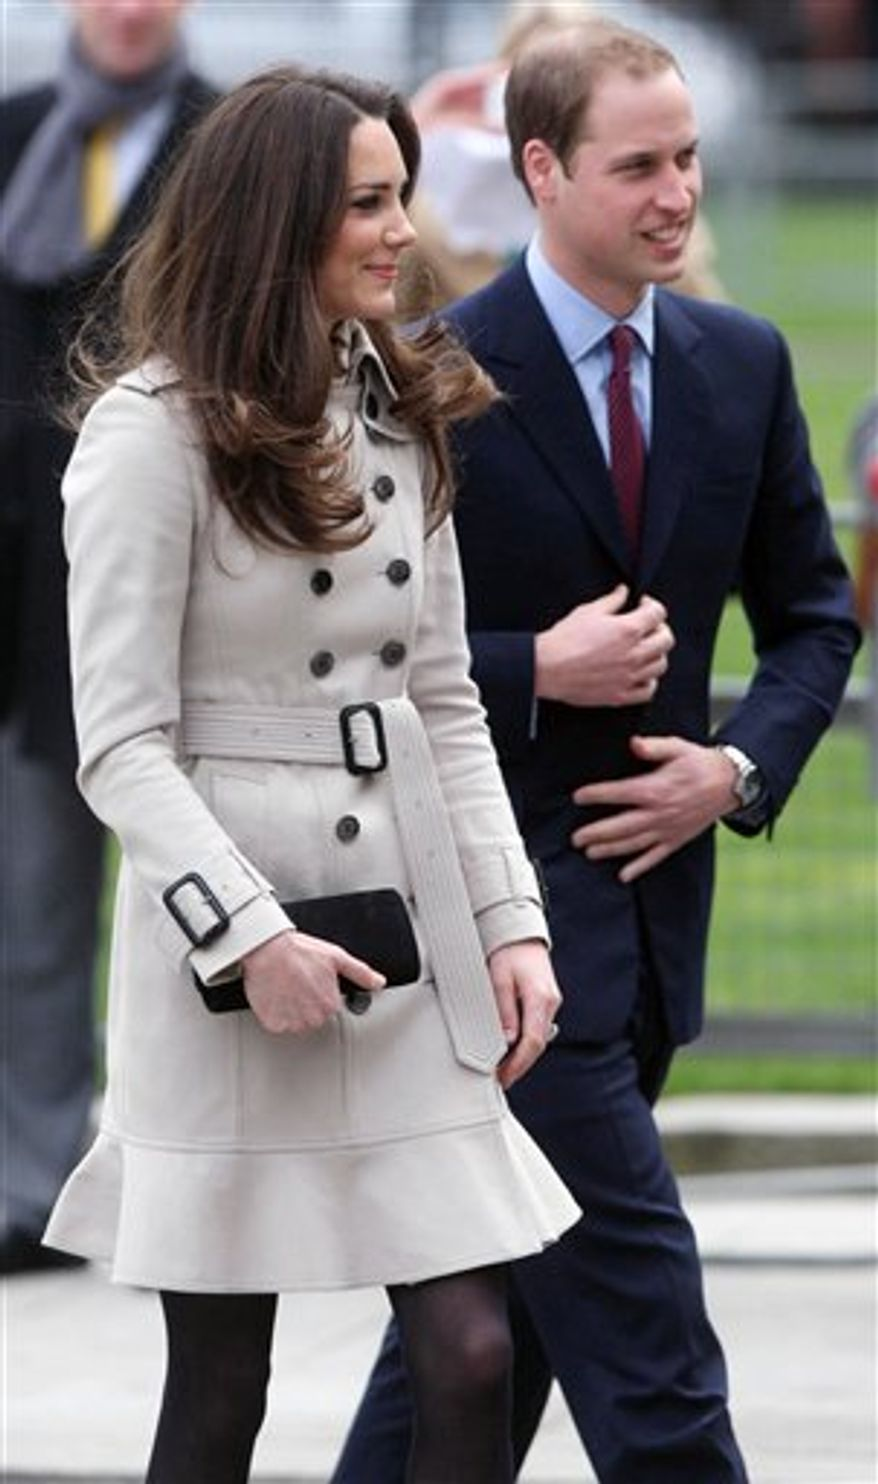 Britain's Prince William, center, and his bride-to-be Kate Middleton, second right, react outside Belfast City Hall, Belfast during their visit to Northern Ireland Tuesday March 8, 2011. Prince William and Kate Middleton traveled to Belfast for their first official visit to Northern Ireland before their April wedding. Police kept watch from the rooftops for a visit that brought the center of Belfast to a standstill.   (AP Photo/Niall Carson, pool)